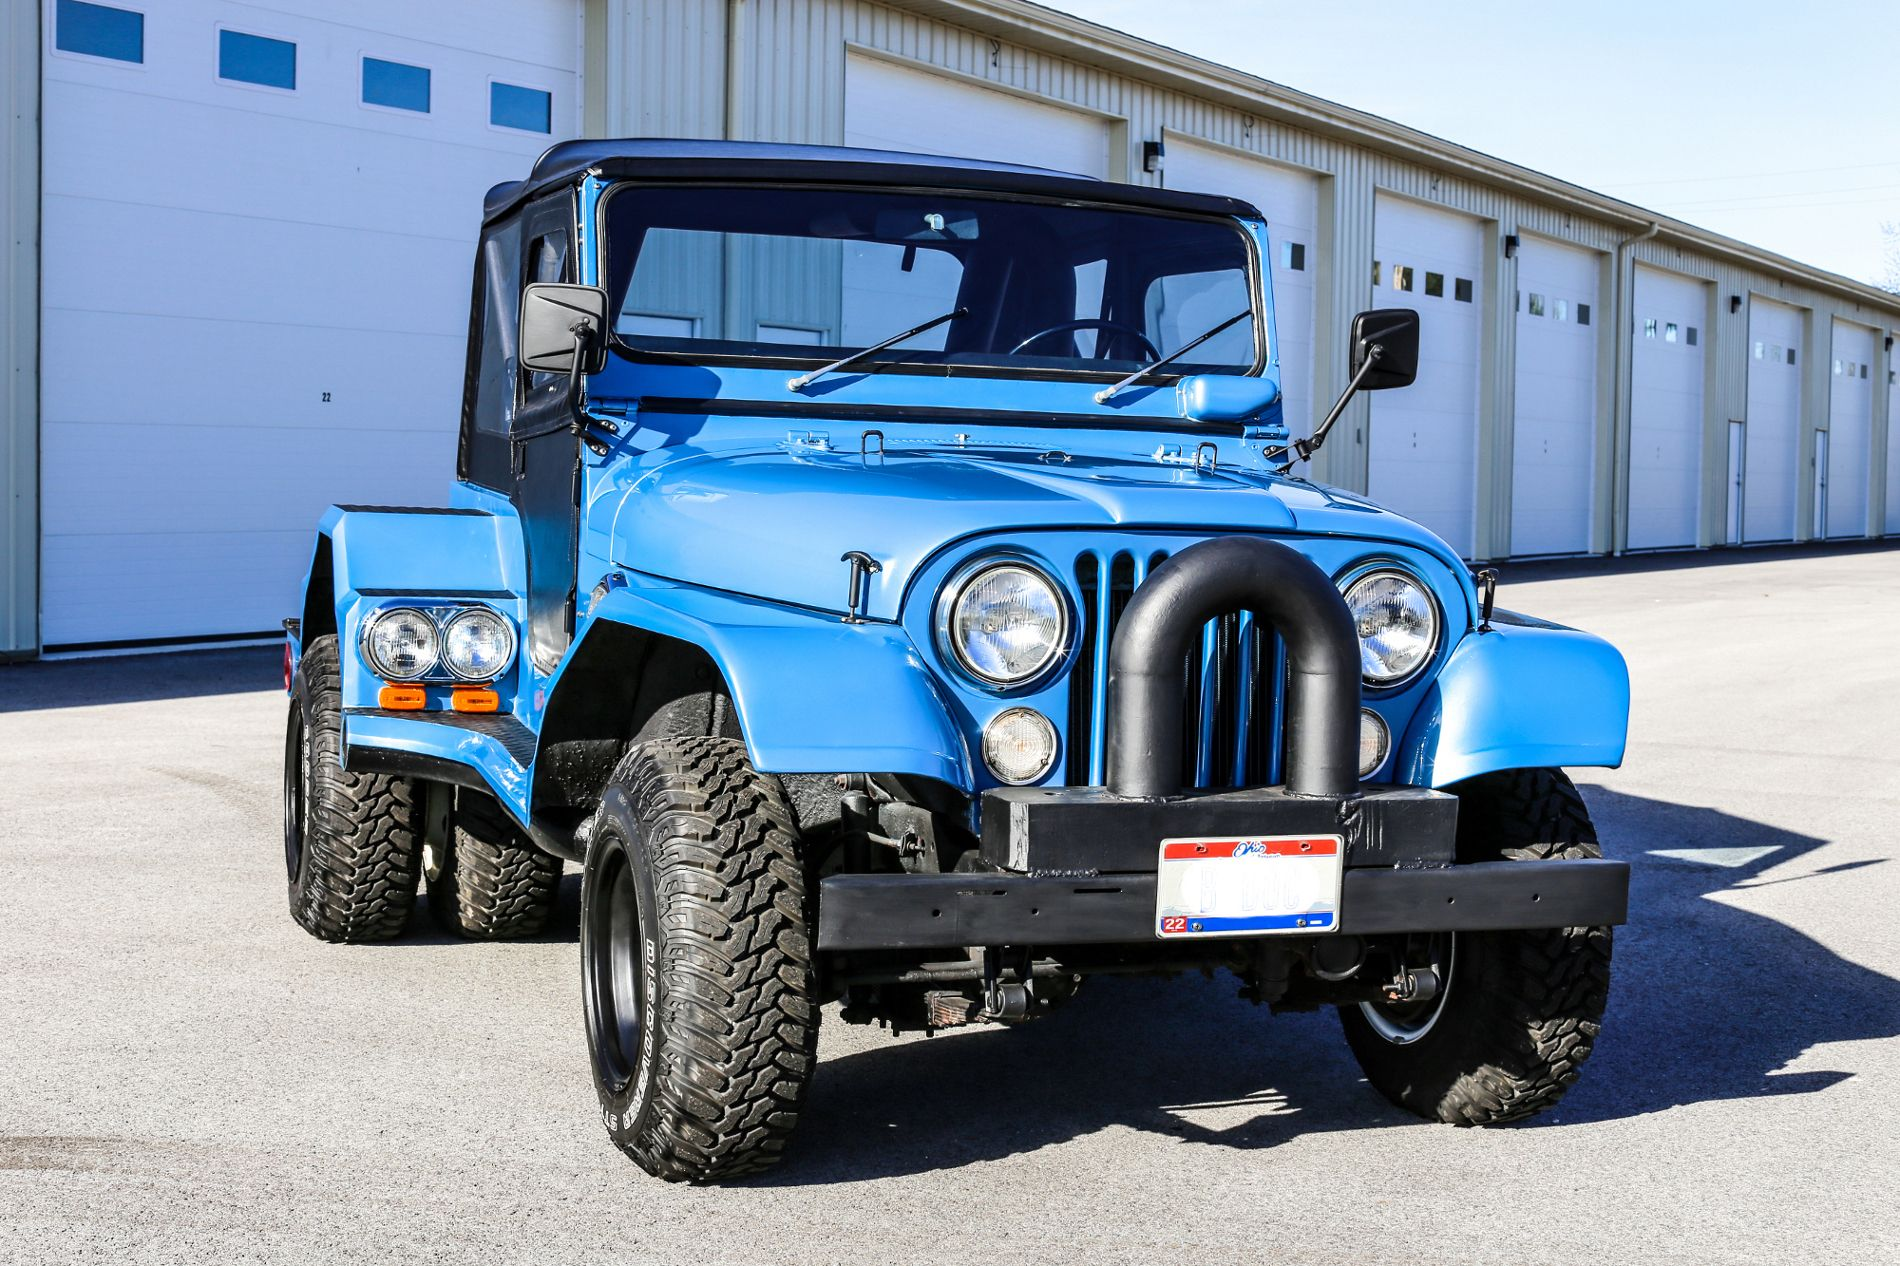 Pin By Eldon Long On Nwa Jeep Owners Association Pinterest Wrangler Camper If You Love Jeeps Youre In The Right Place